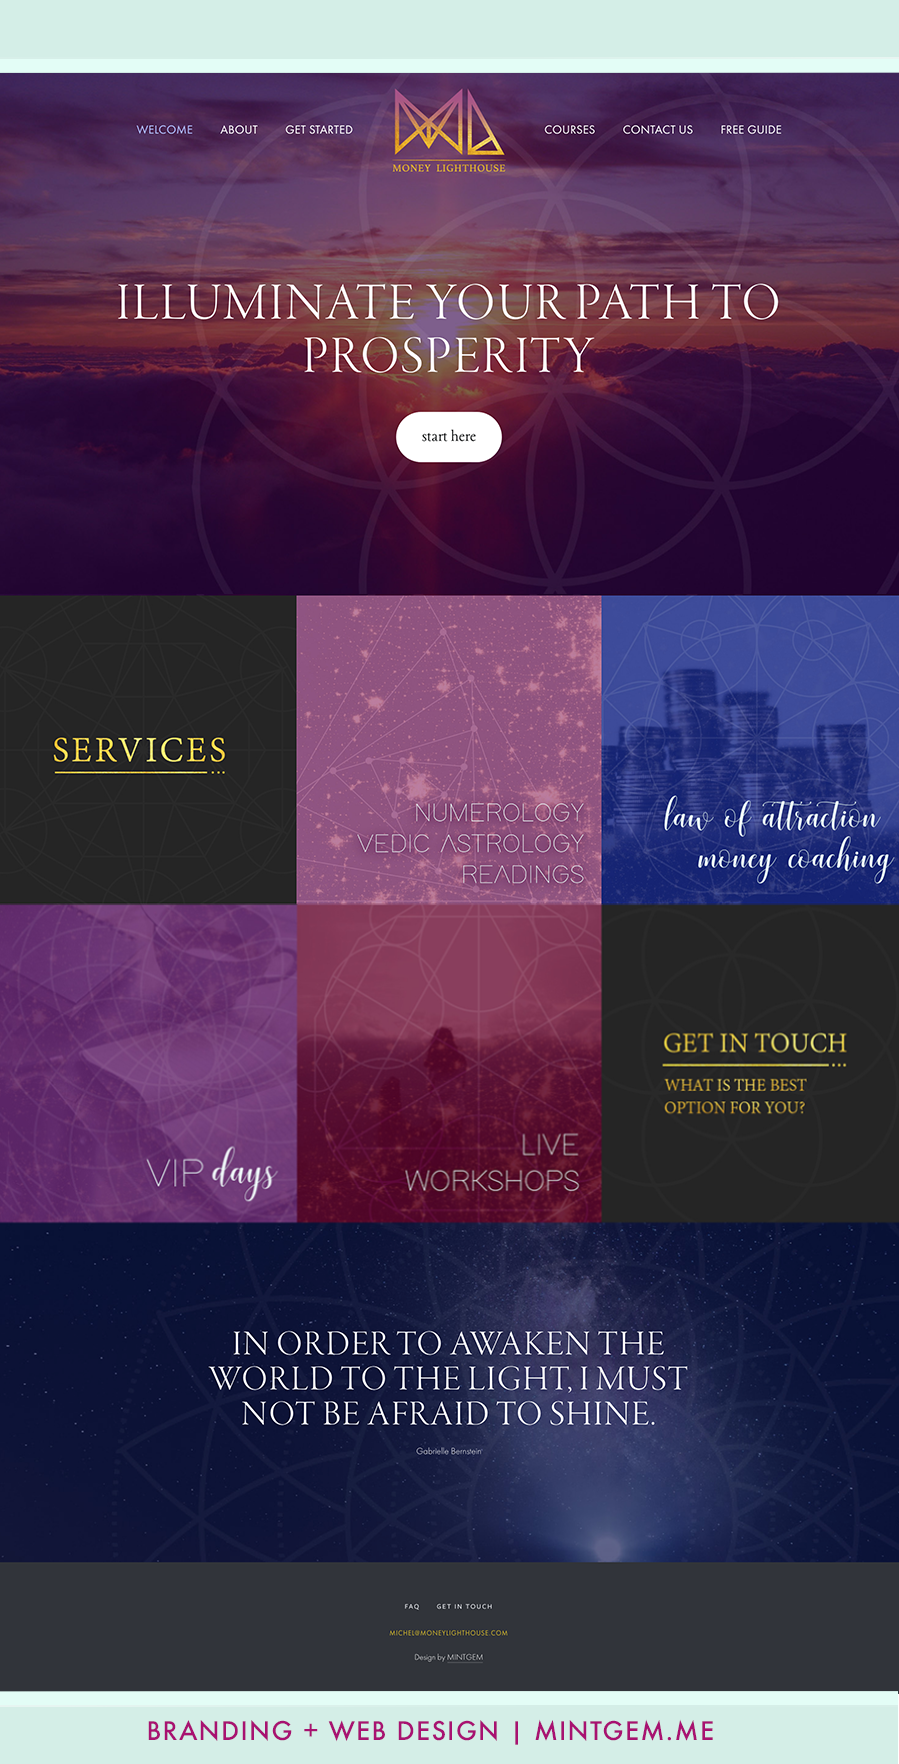 branding-mintgem-logo-design-for-SOULFUL-coaches-women-in-business-michel.png